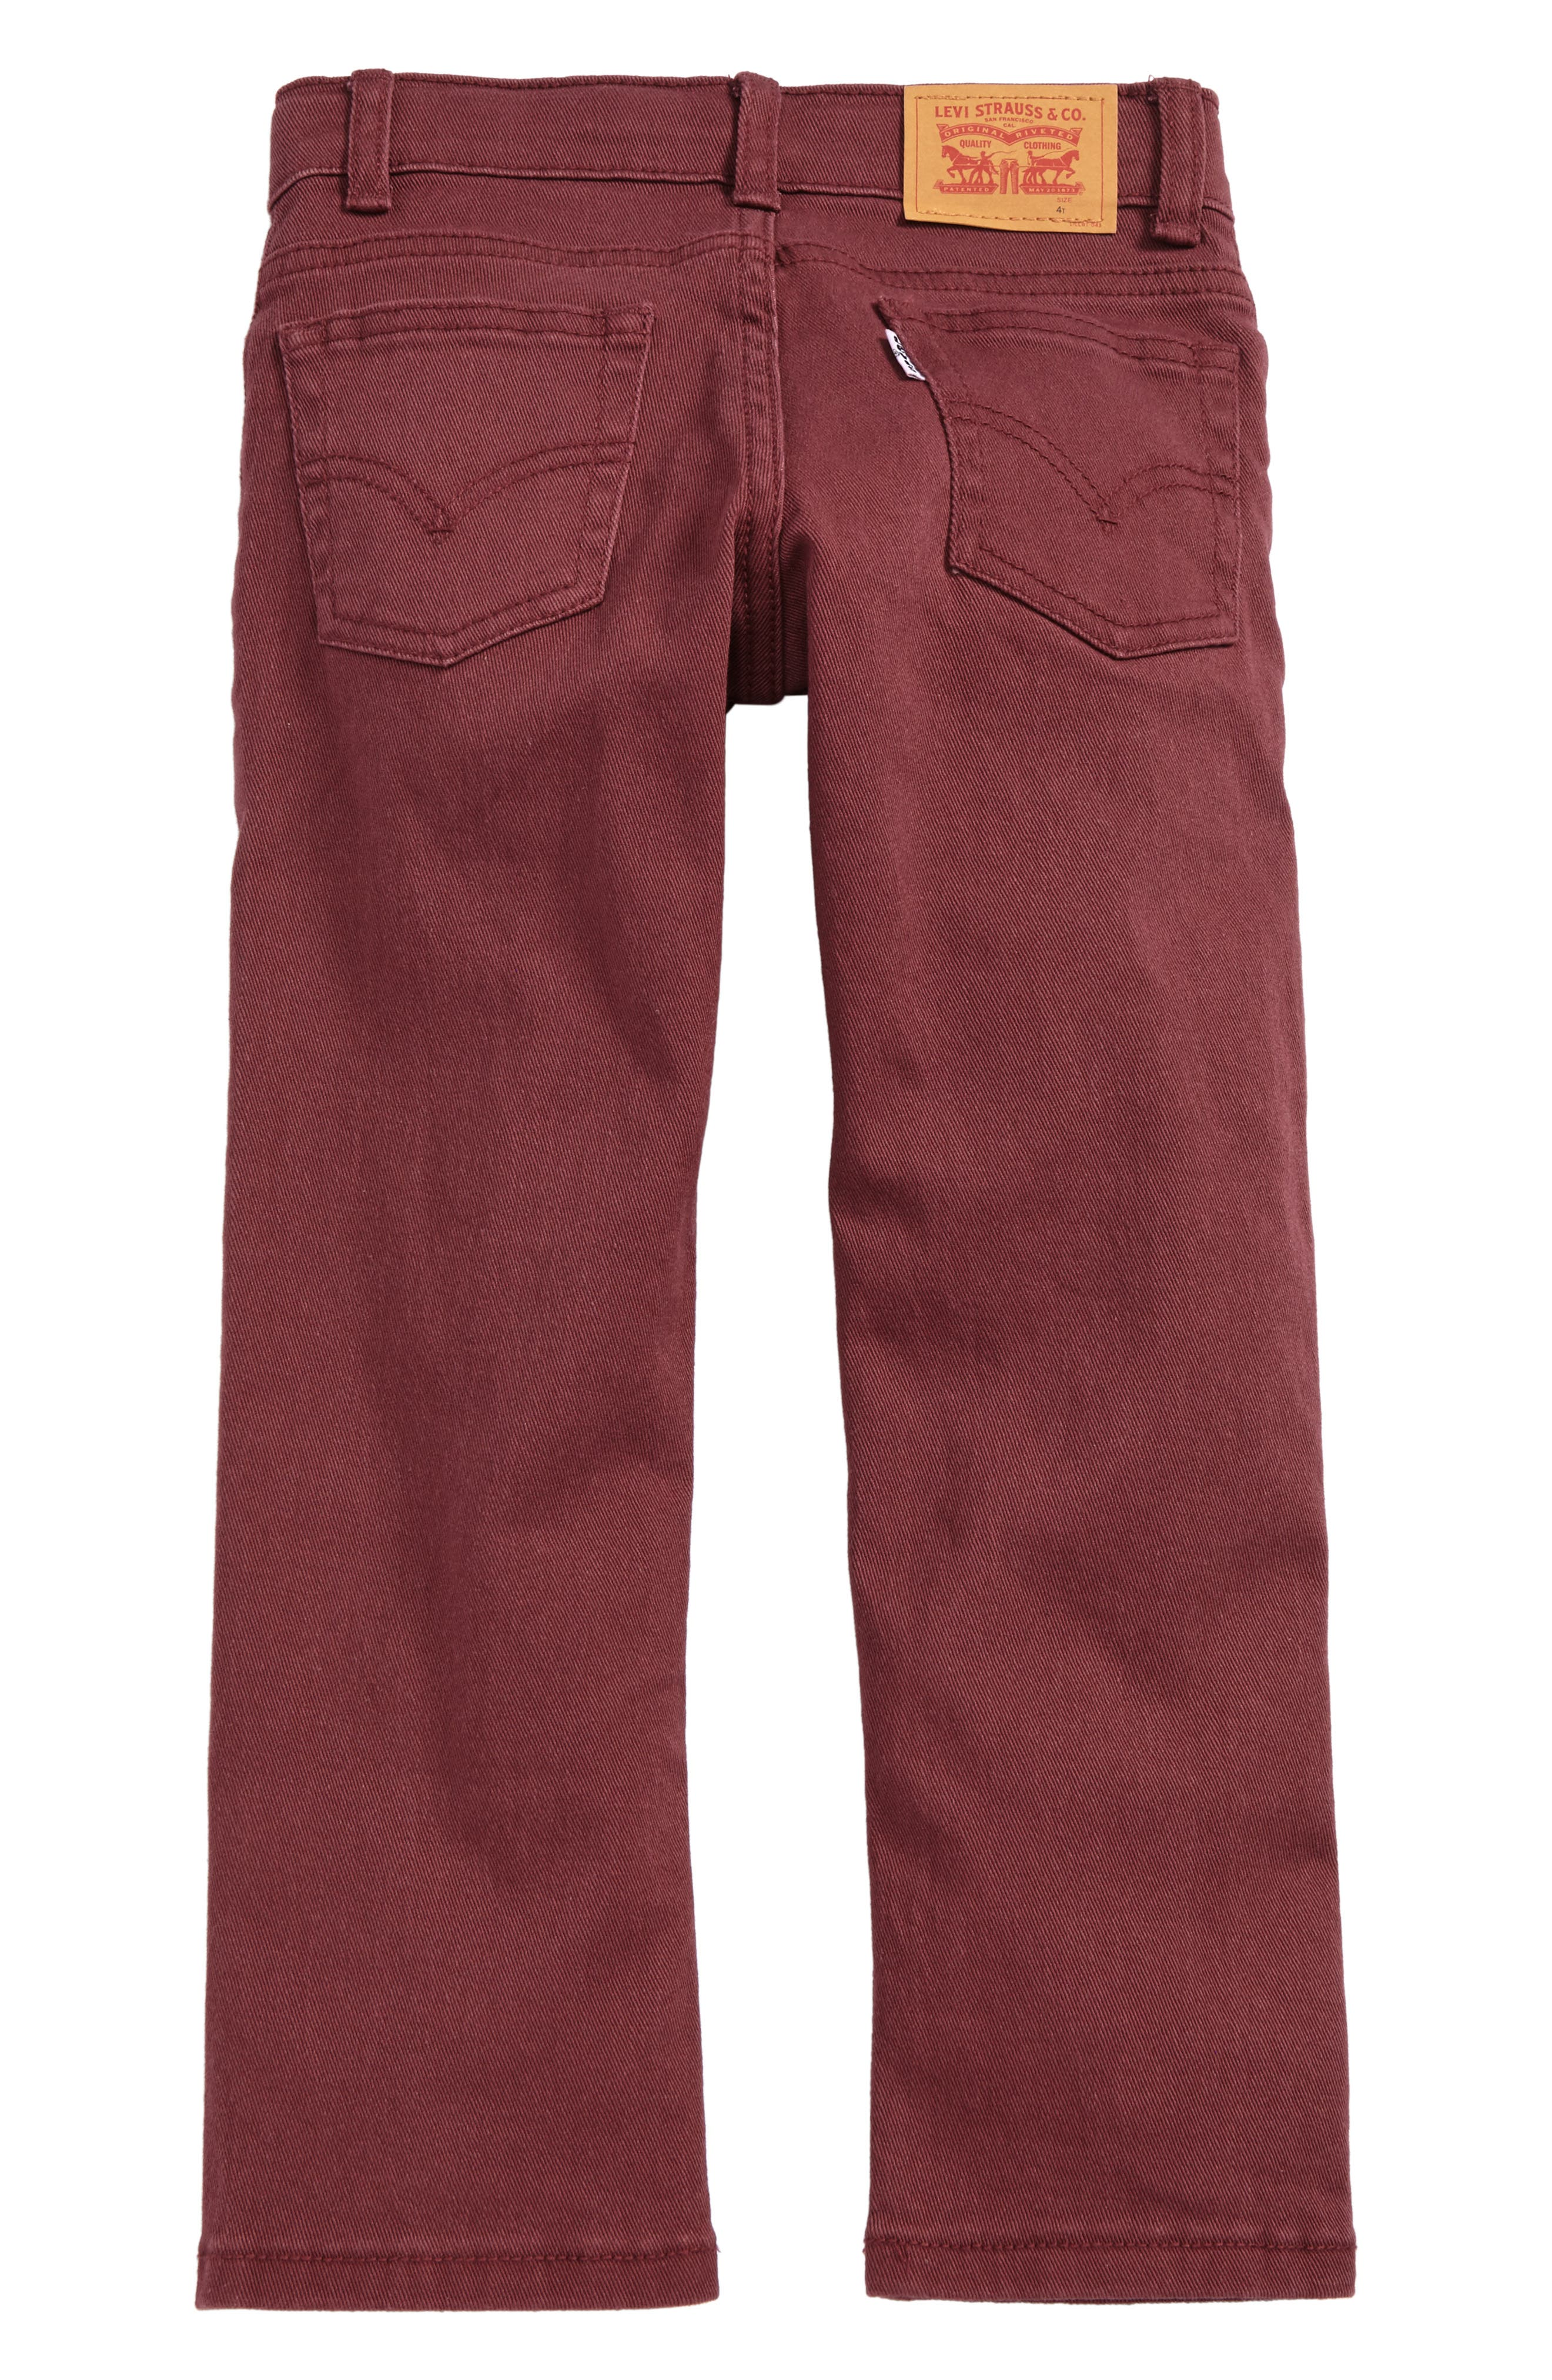 511<sup>™</sup> Slim Fit Jeans,                             Alternate thumbnail 2, color,                             Red Mahogany